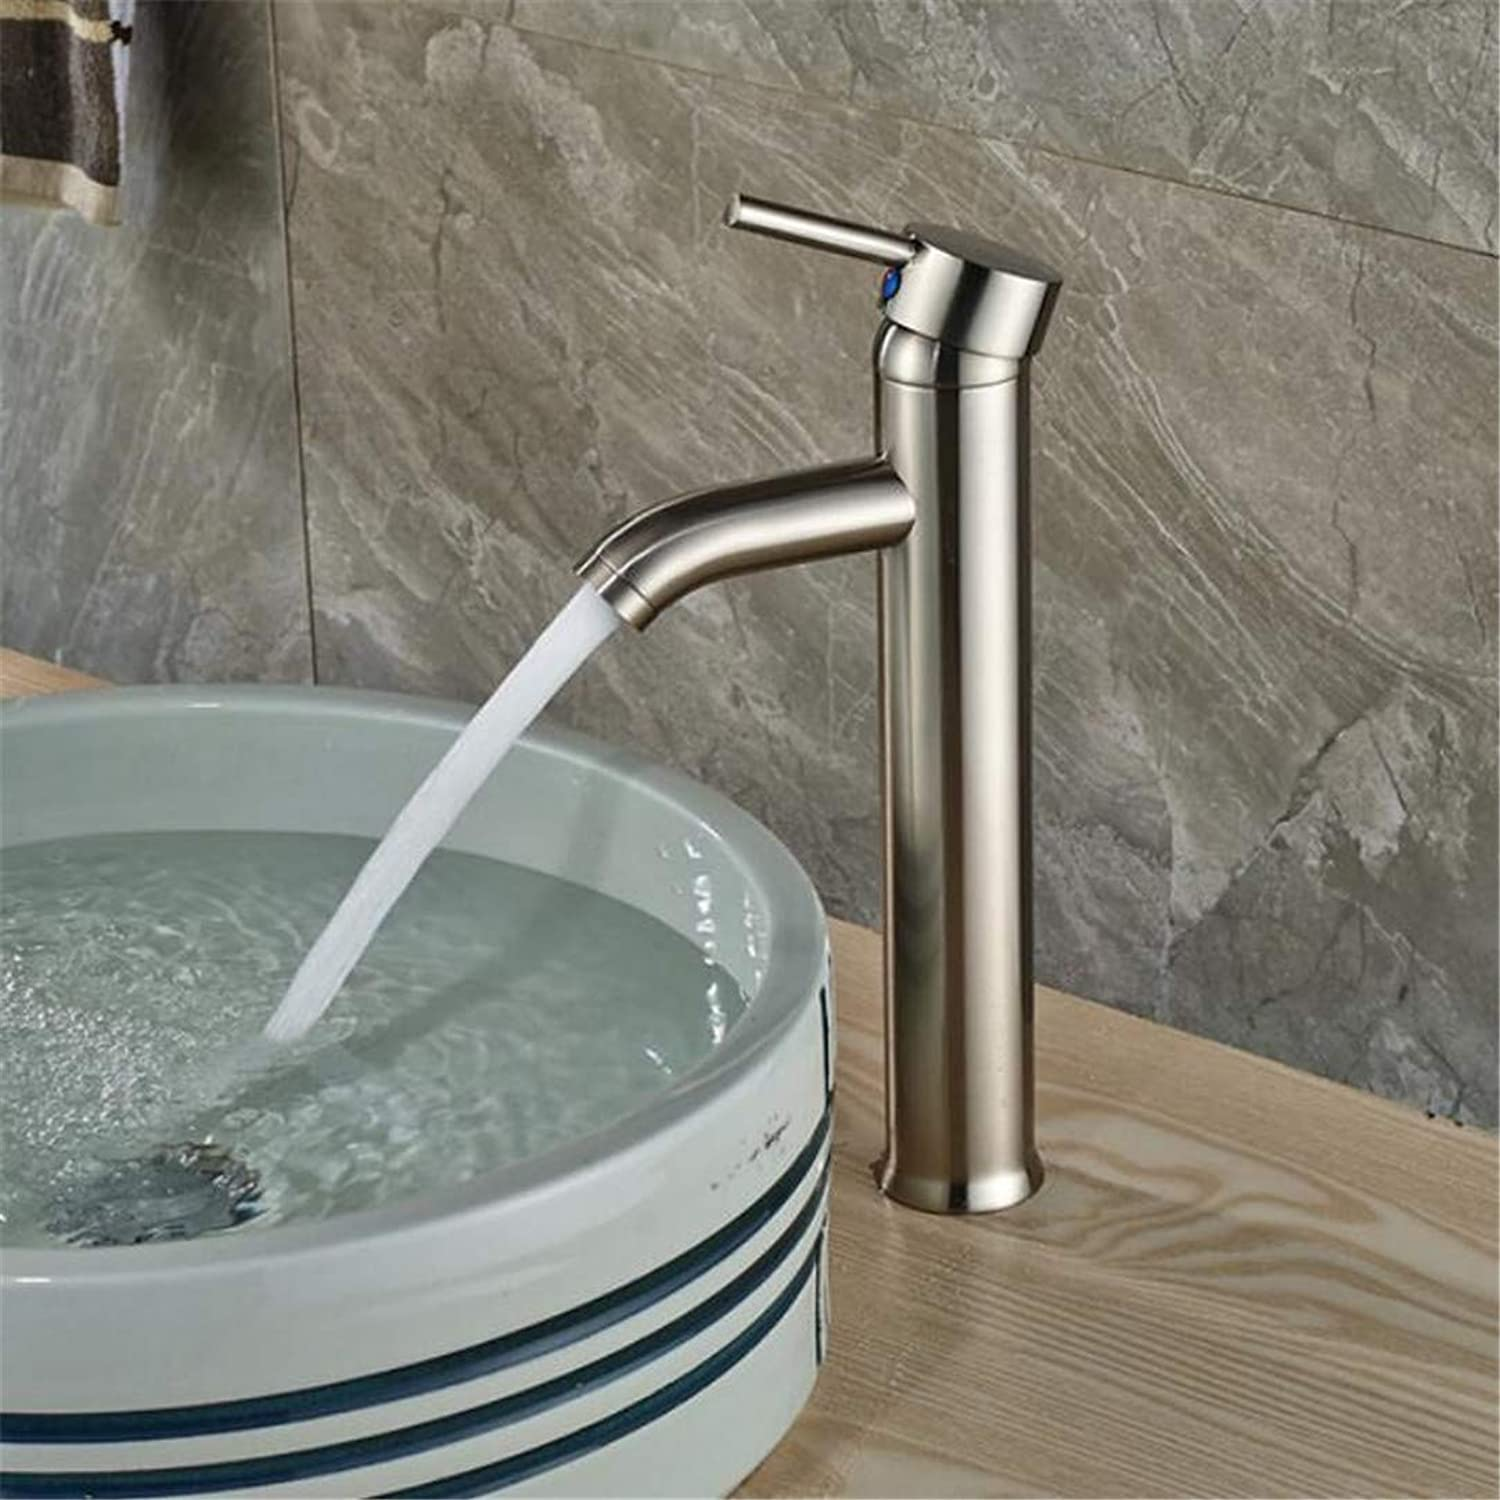 Faucet Washbasin Mixer ?Oil Rubbed Bronze Finished Deck Mounted Bathroom Sink Faucet Double Handles Mixer Tap